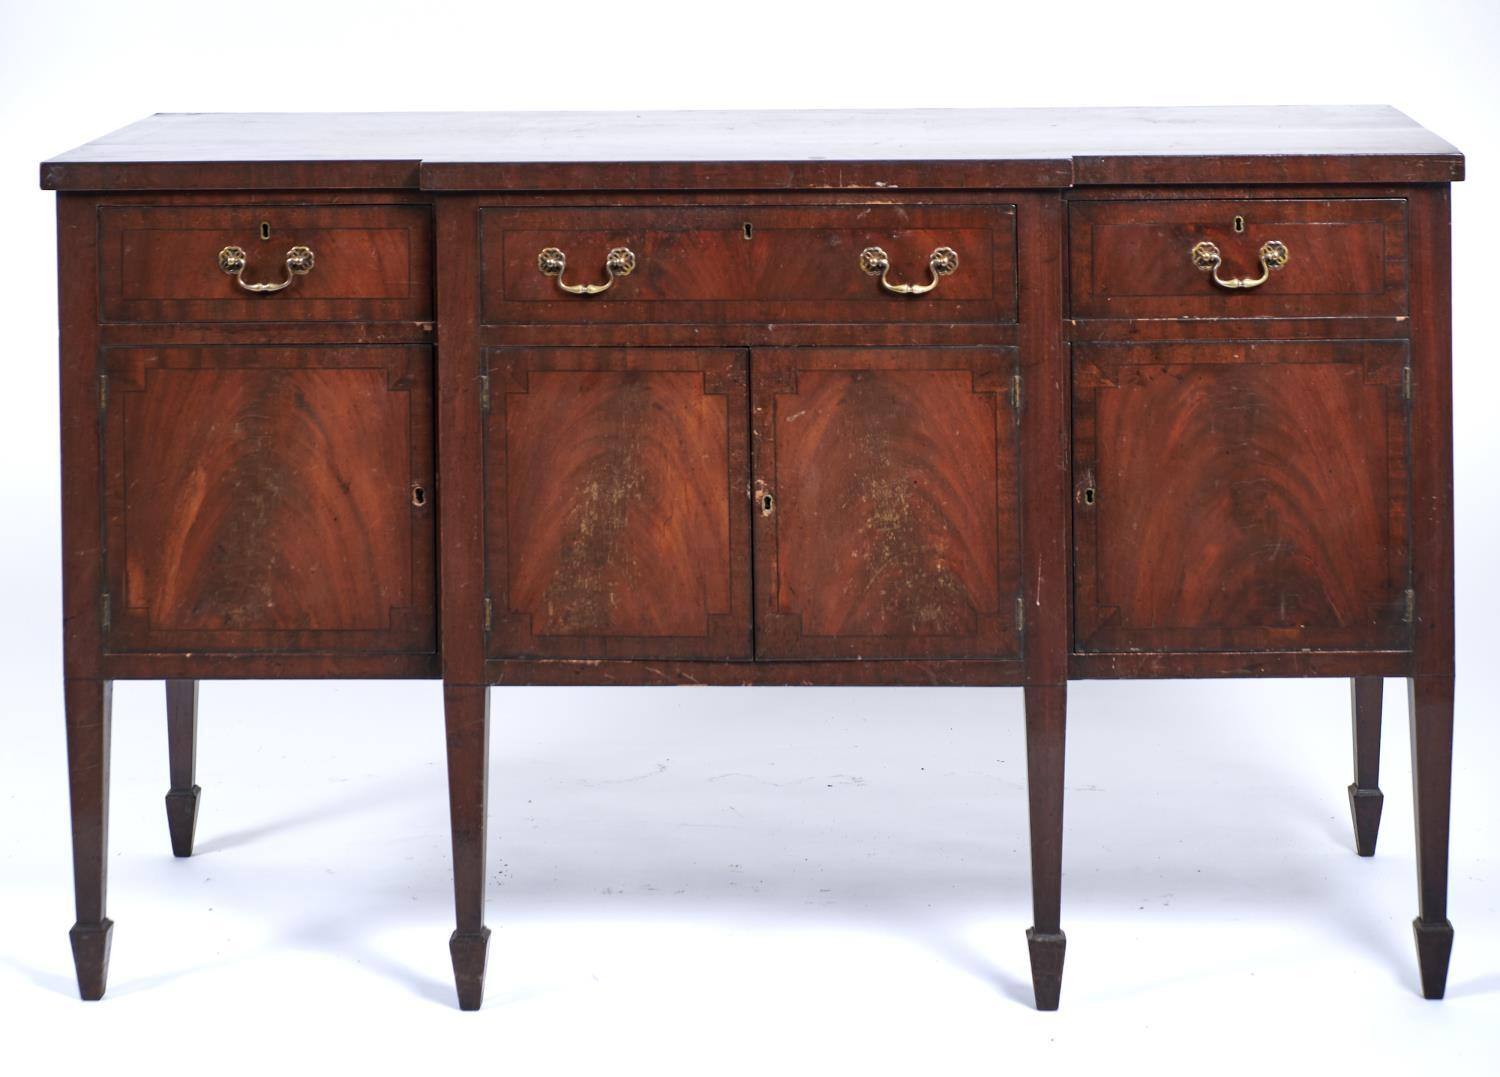 A GEORGE III STYLE MAHOGANY BREAKFRONT SIDEBOARD, LATE 19TH C, CROSSBANDED AND EBONY STRUNG